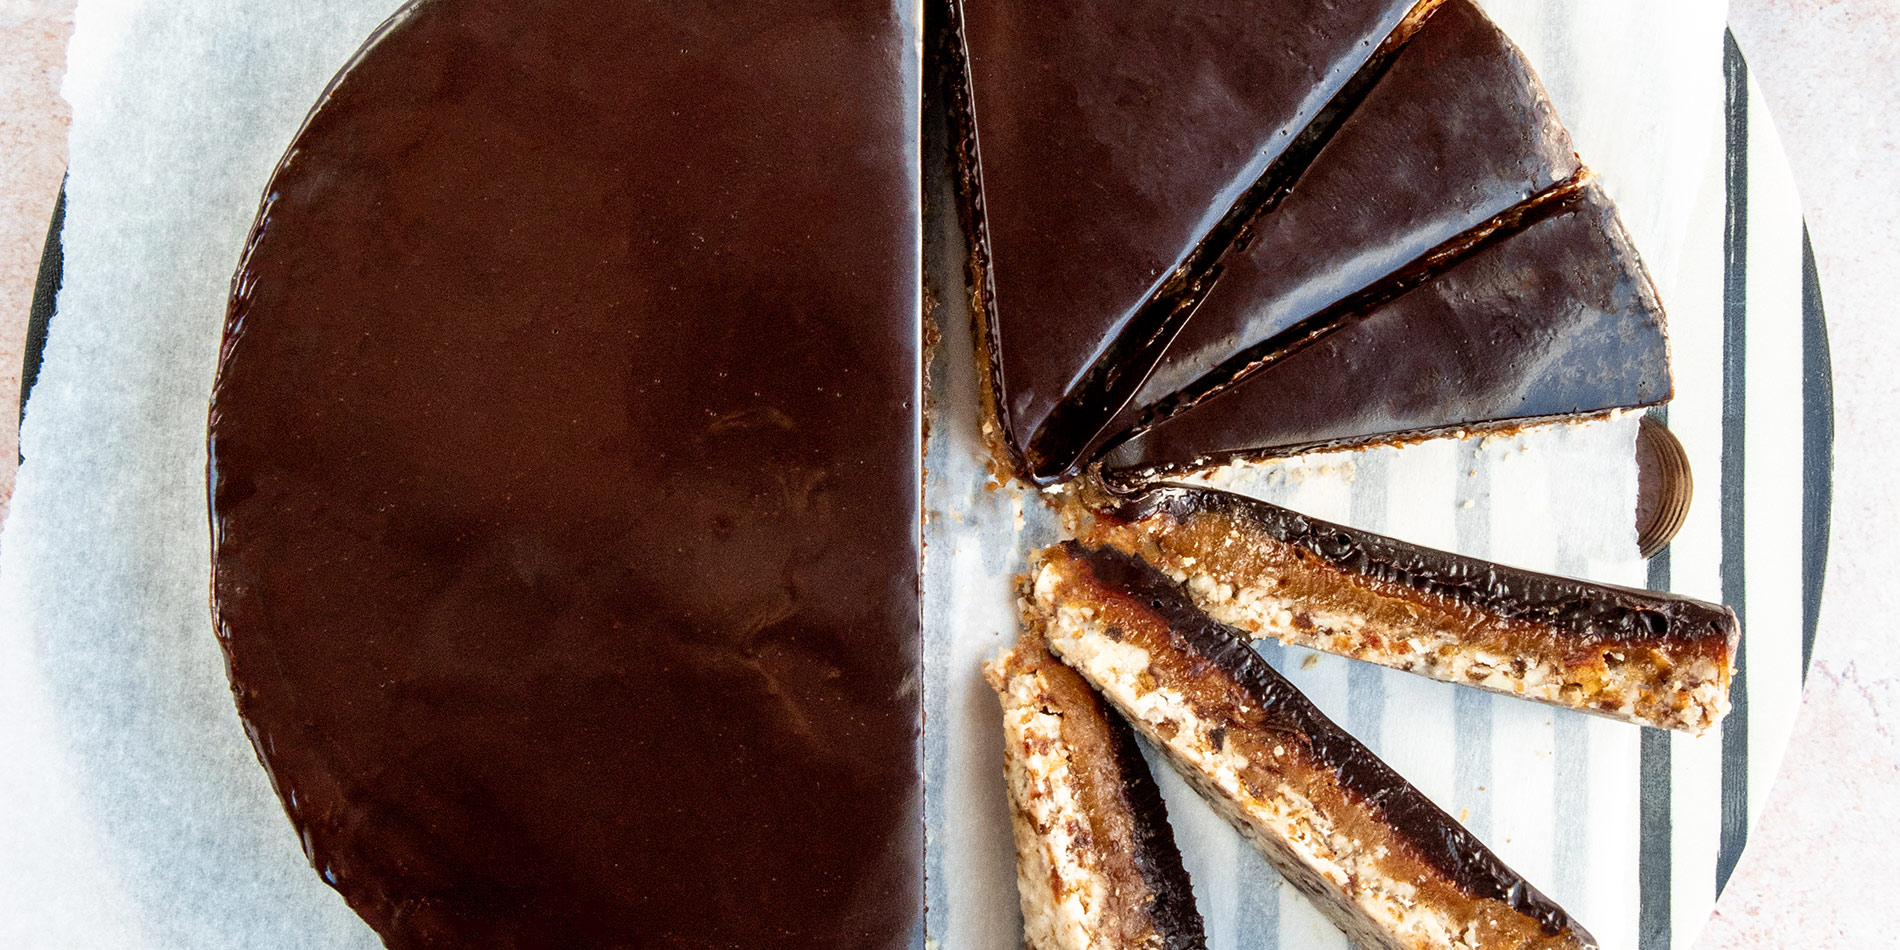 Almond Caramel Tart sliced and rotated for display over parchment, on a striped tabletop